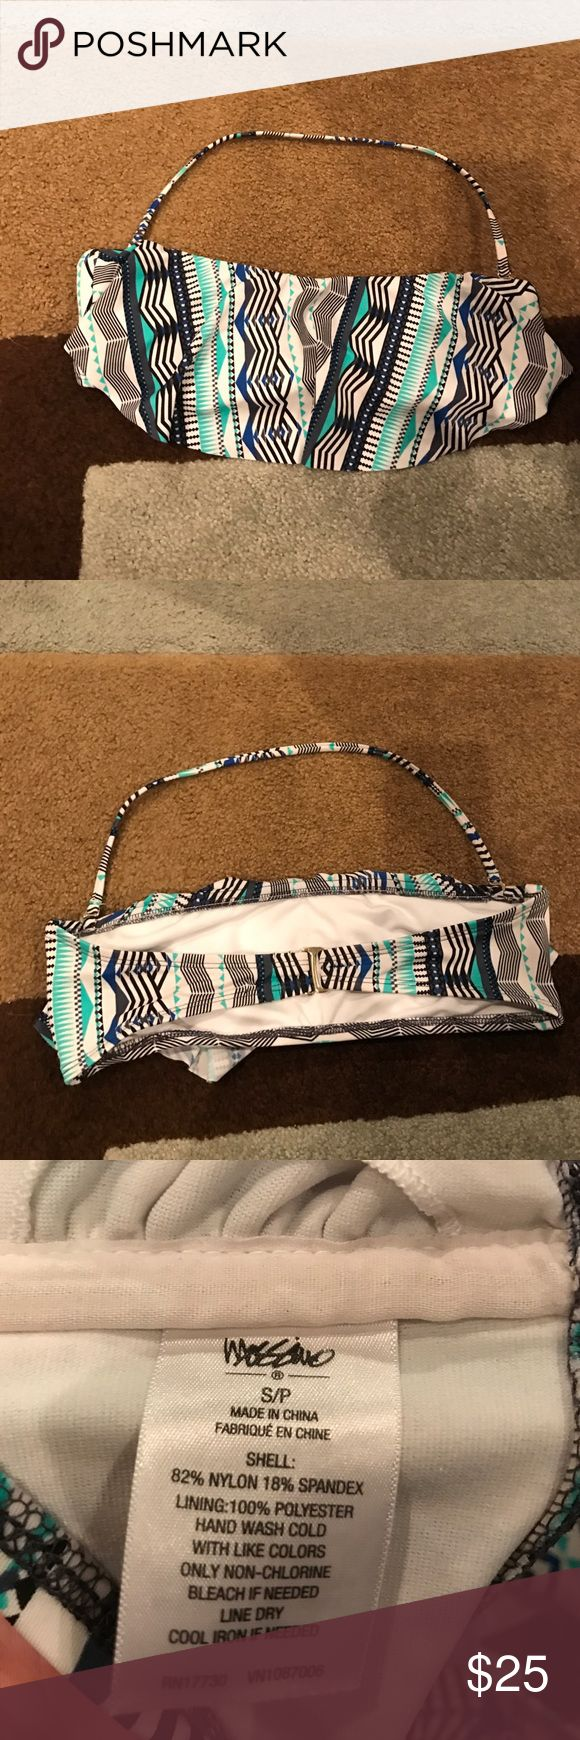 Bikini top Blue, black, teal, and white. Flowy. Can take off the strap to make it strapless. Bandeau. Only worn twice. Only reason for sale is because it's too small for me now. Super cute!! Mossimo Supply Co Swim Bikinis